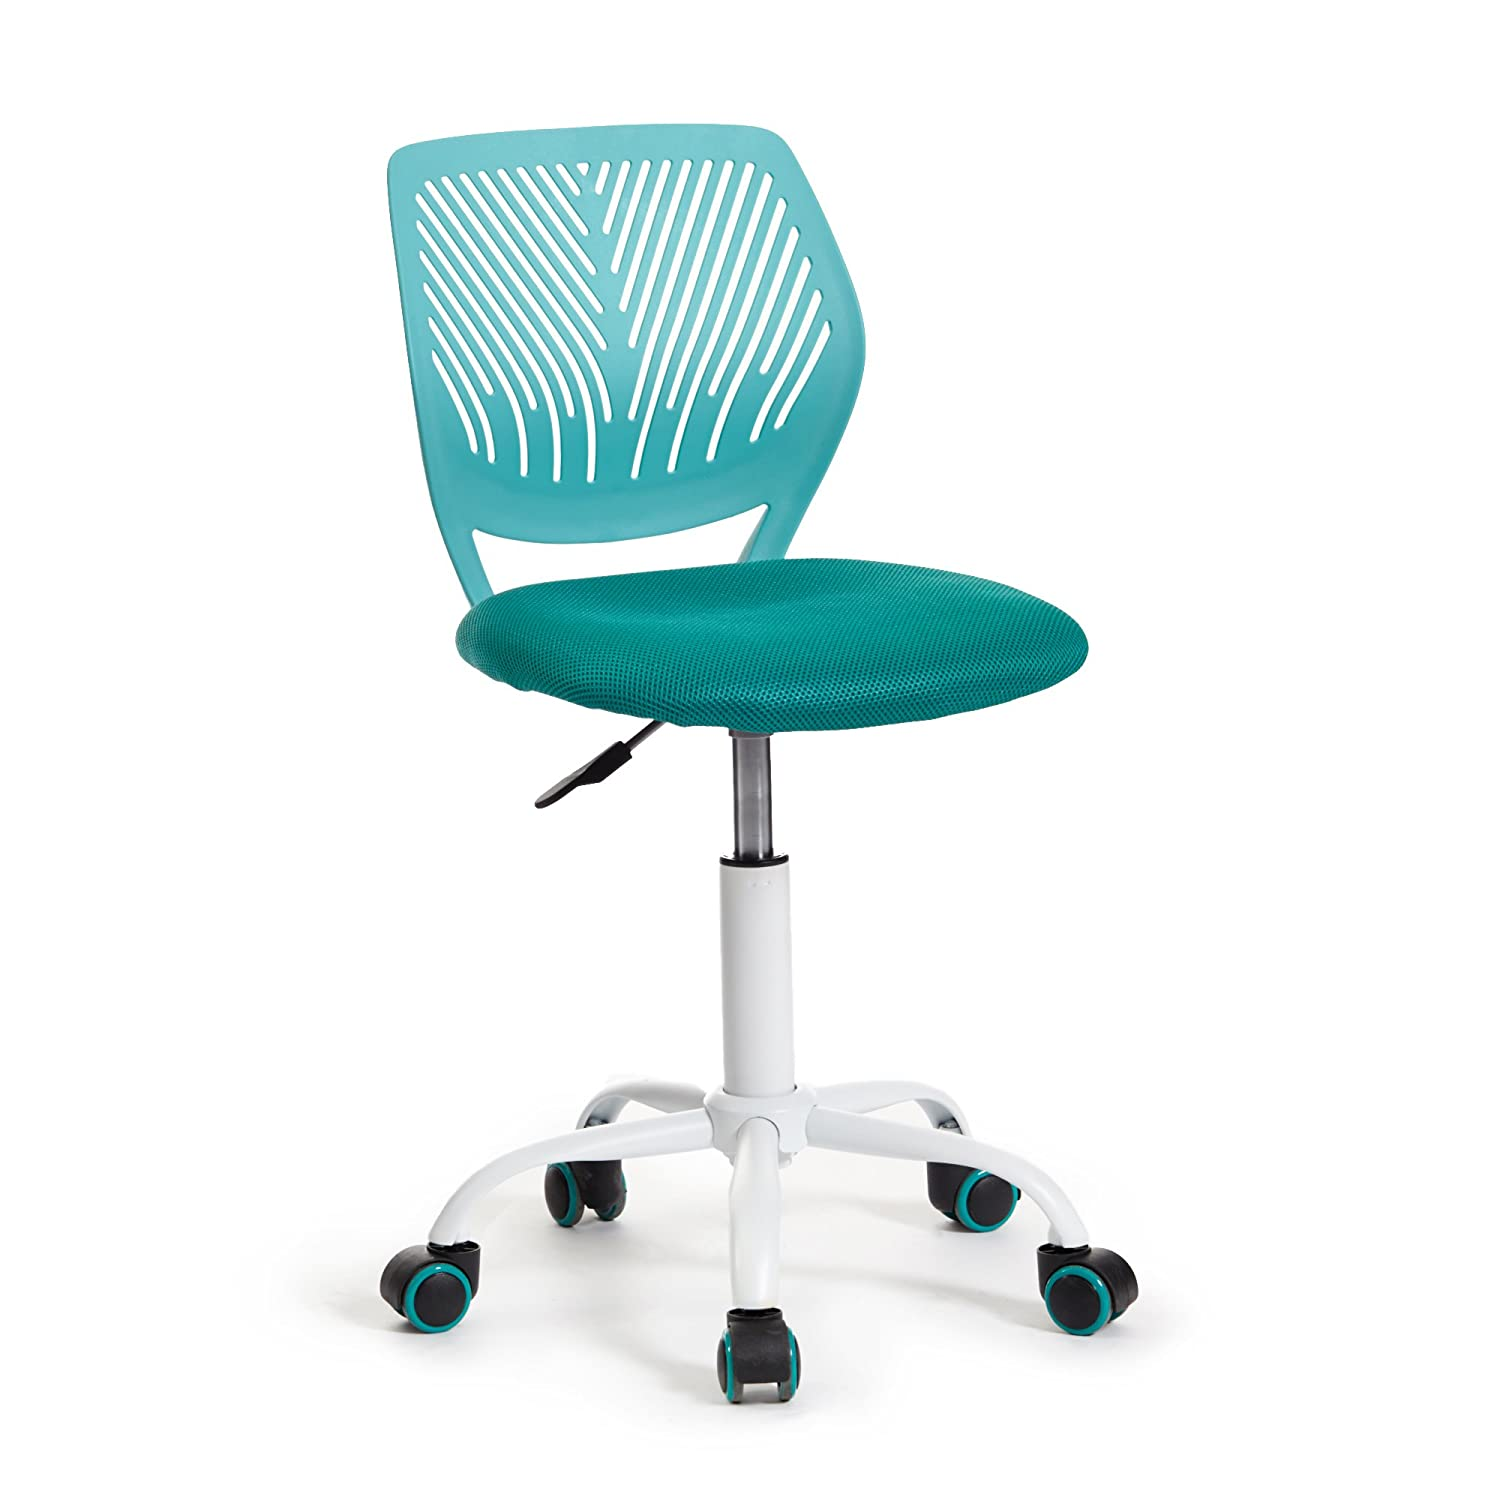 amazoncom greenforest office task desk chair adjustable mid back home children study chair turquoise kitchen dining